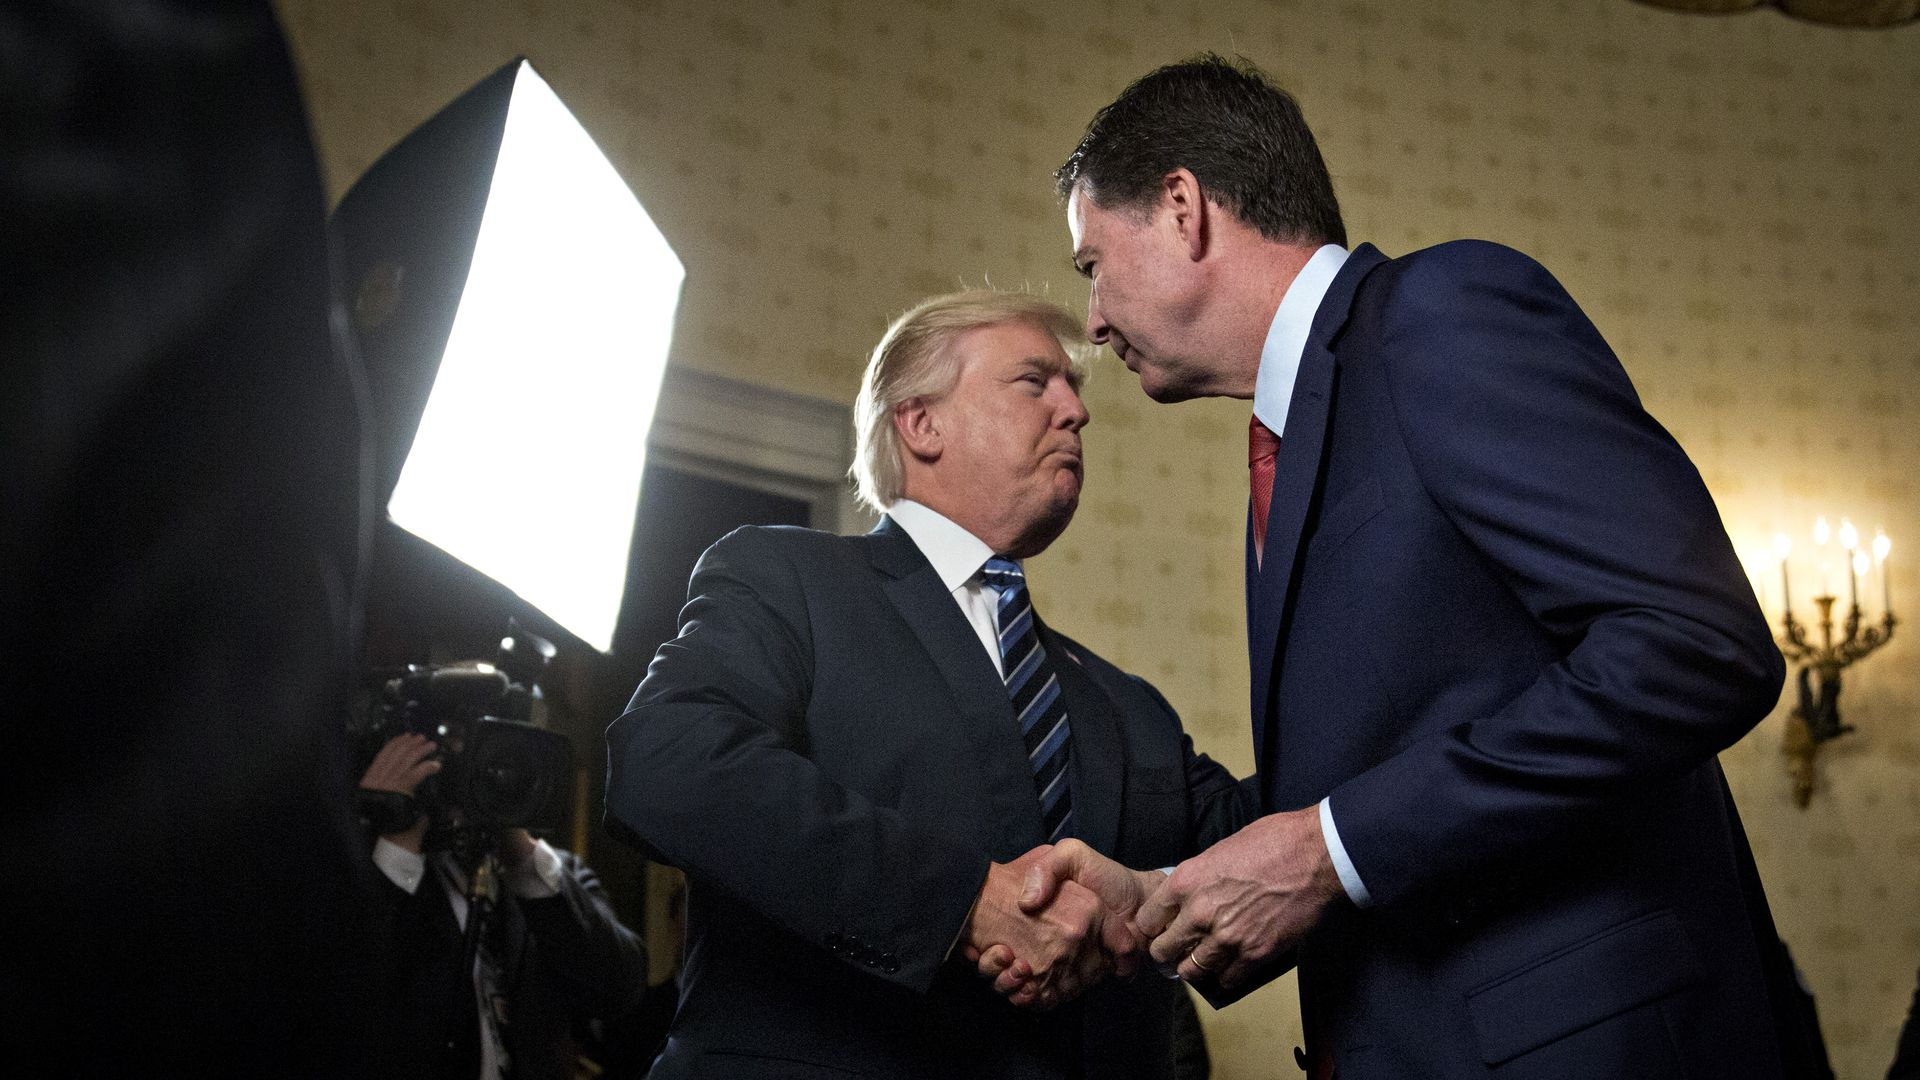 Donald Trump and James Comey shaking hands.